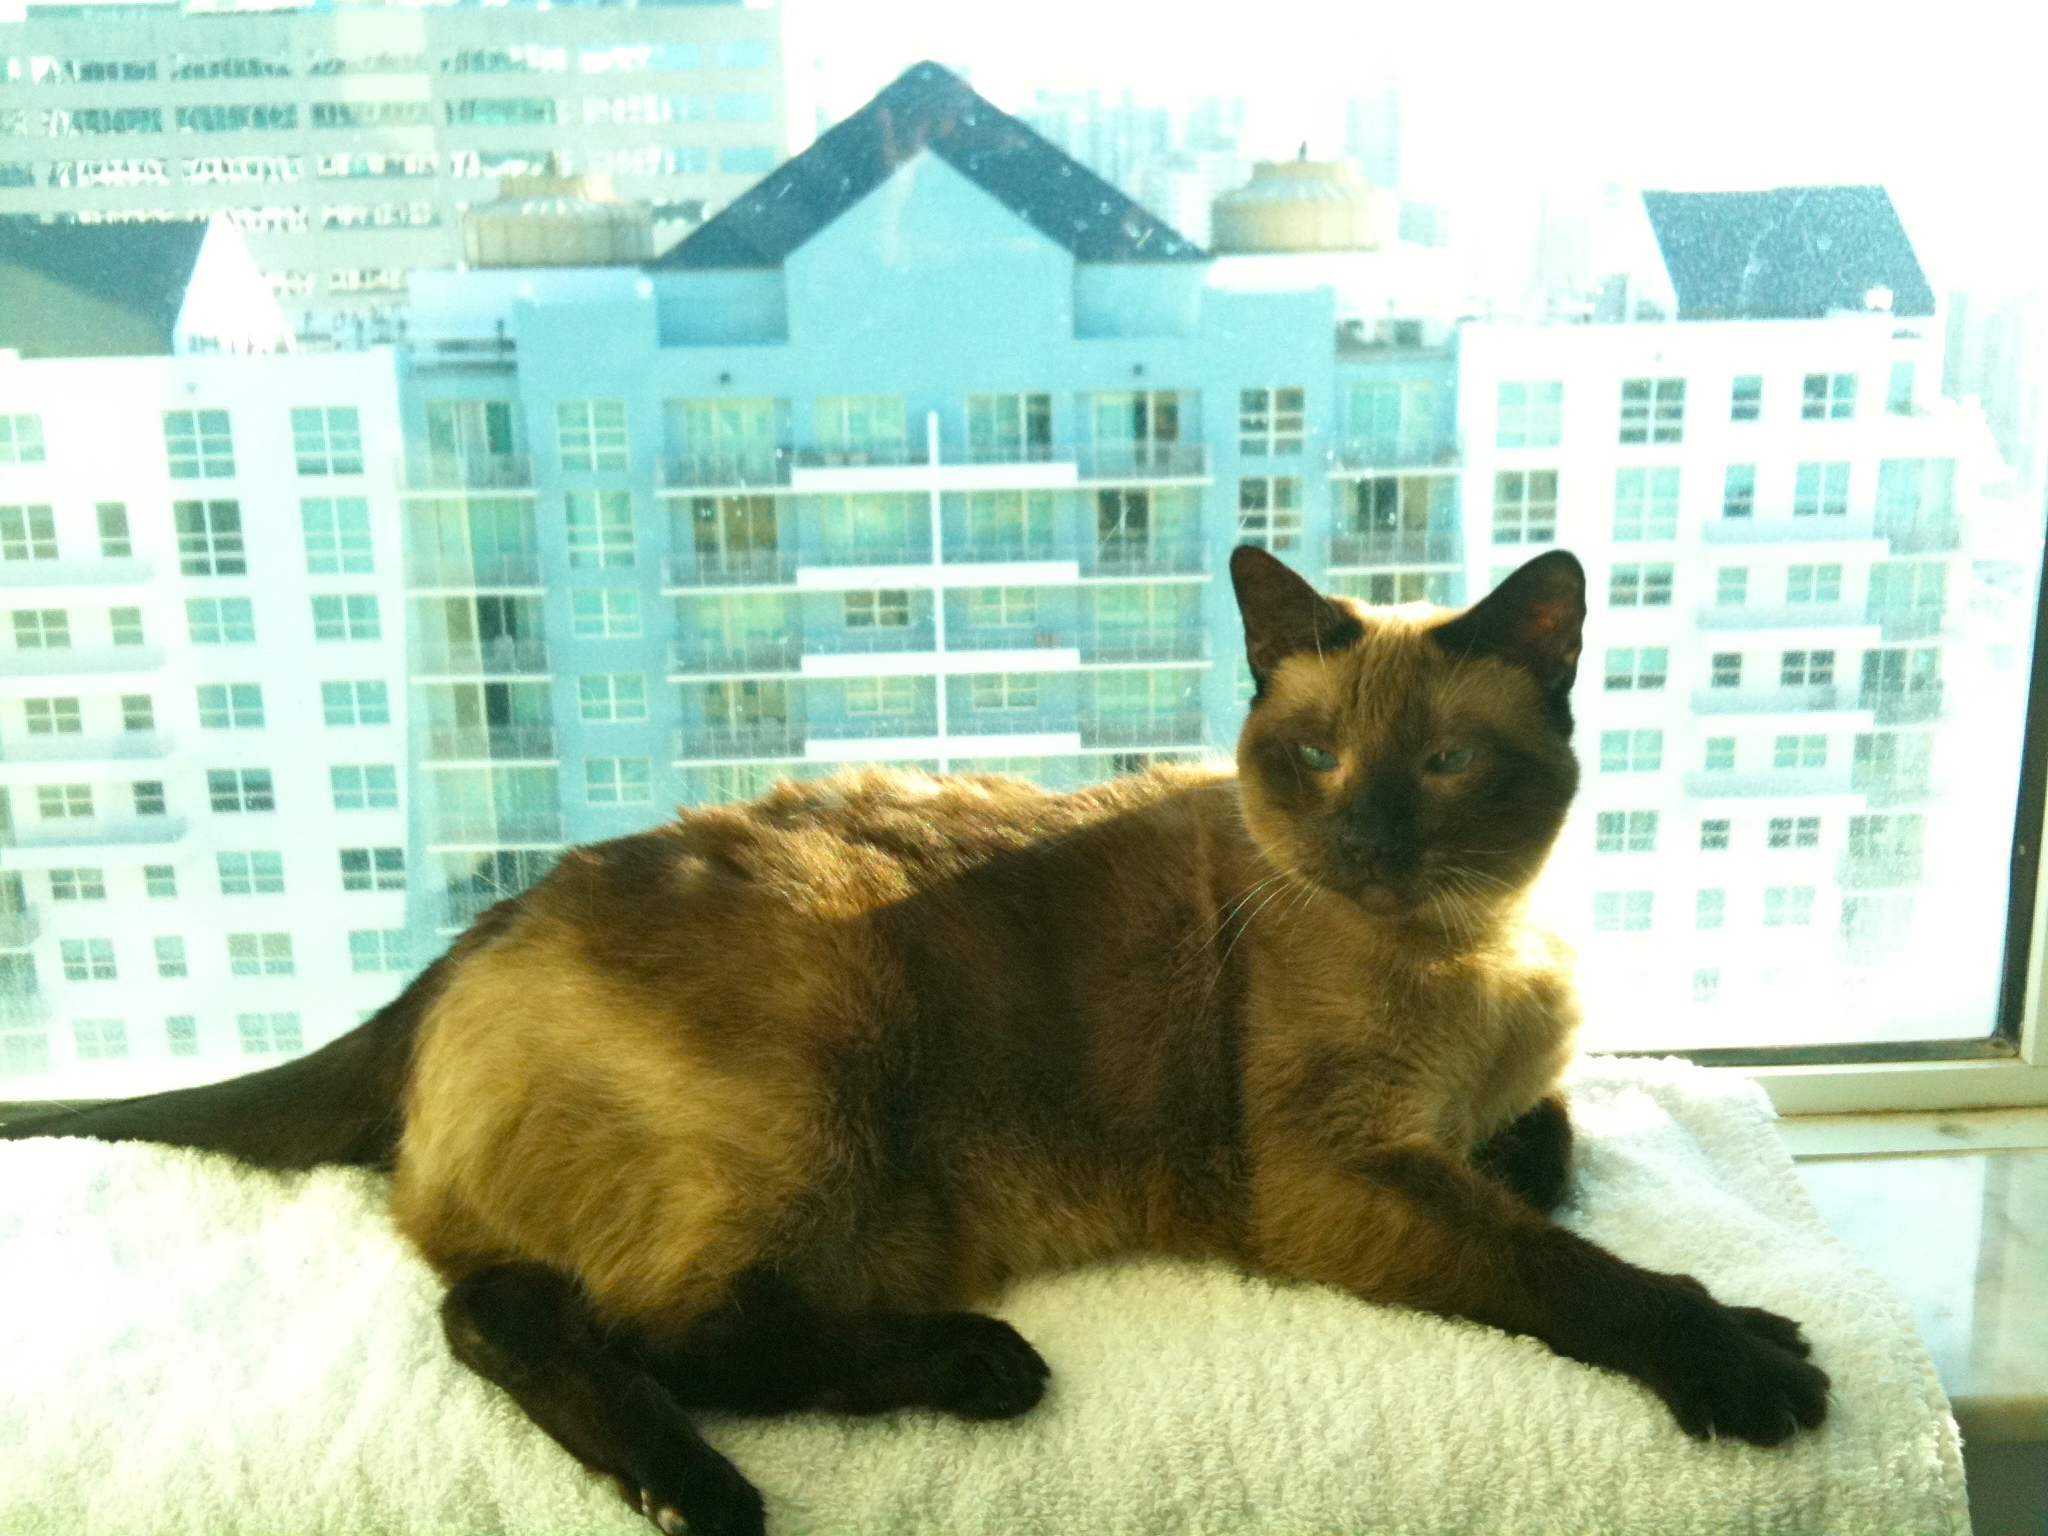 Isabella as a 12-year old lady, taking the sun from her 36th floor window. May 28, 2010, iPhone 3G.